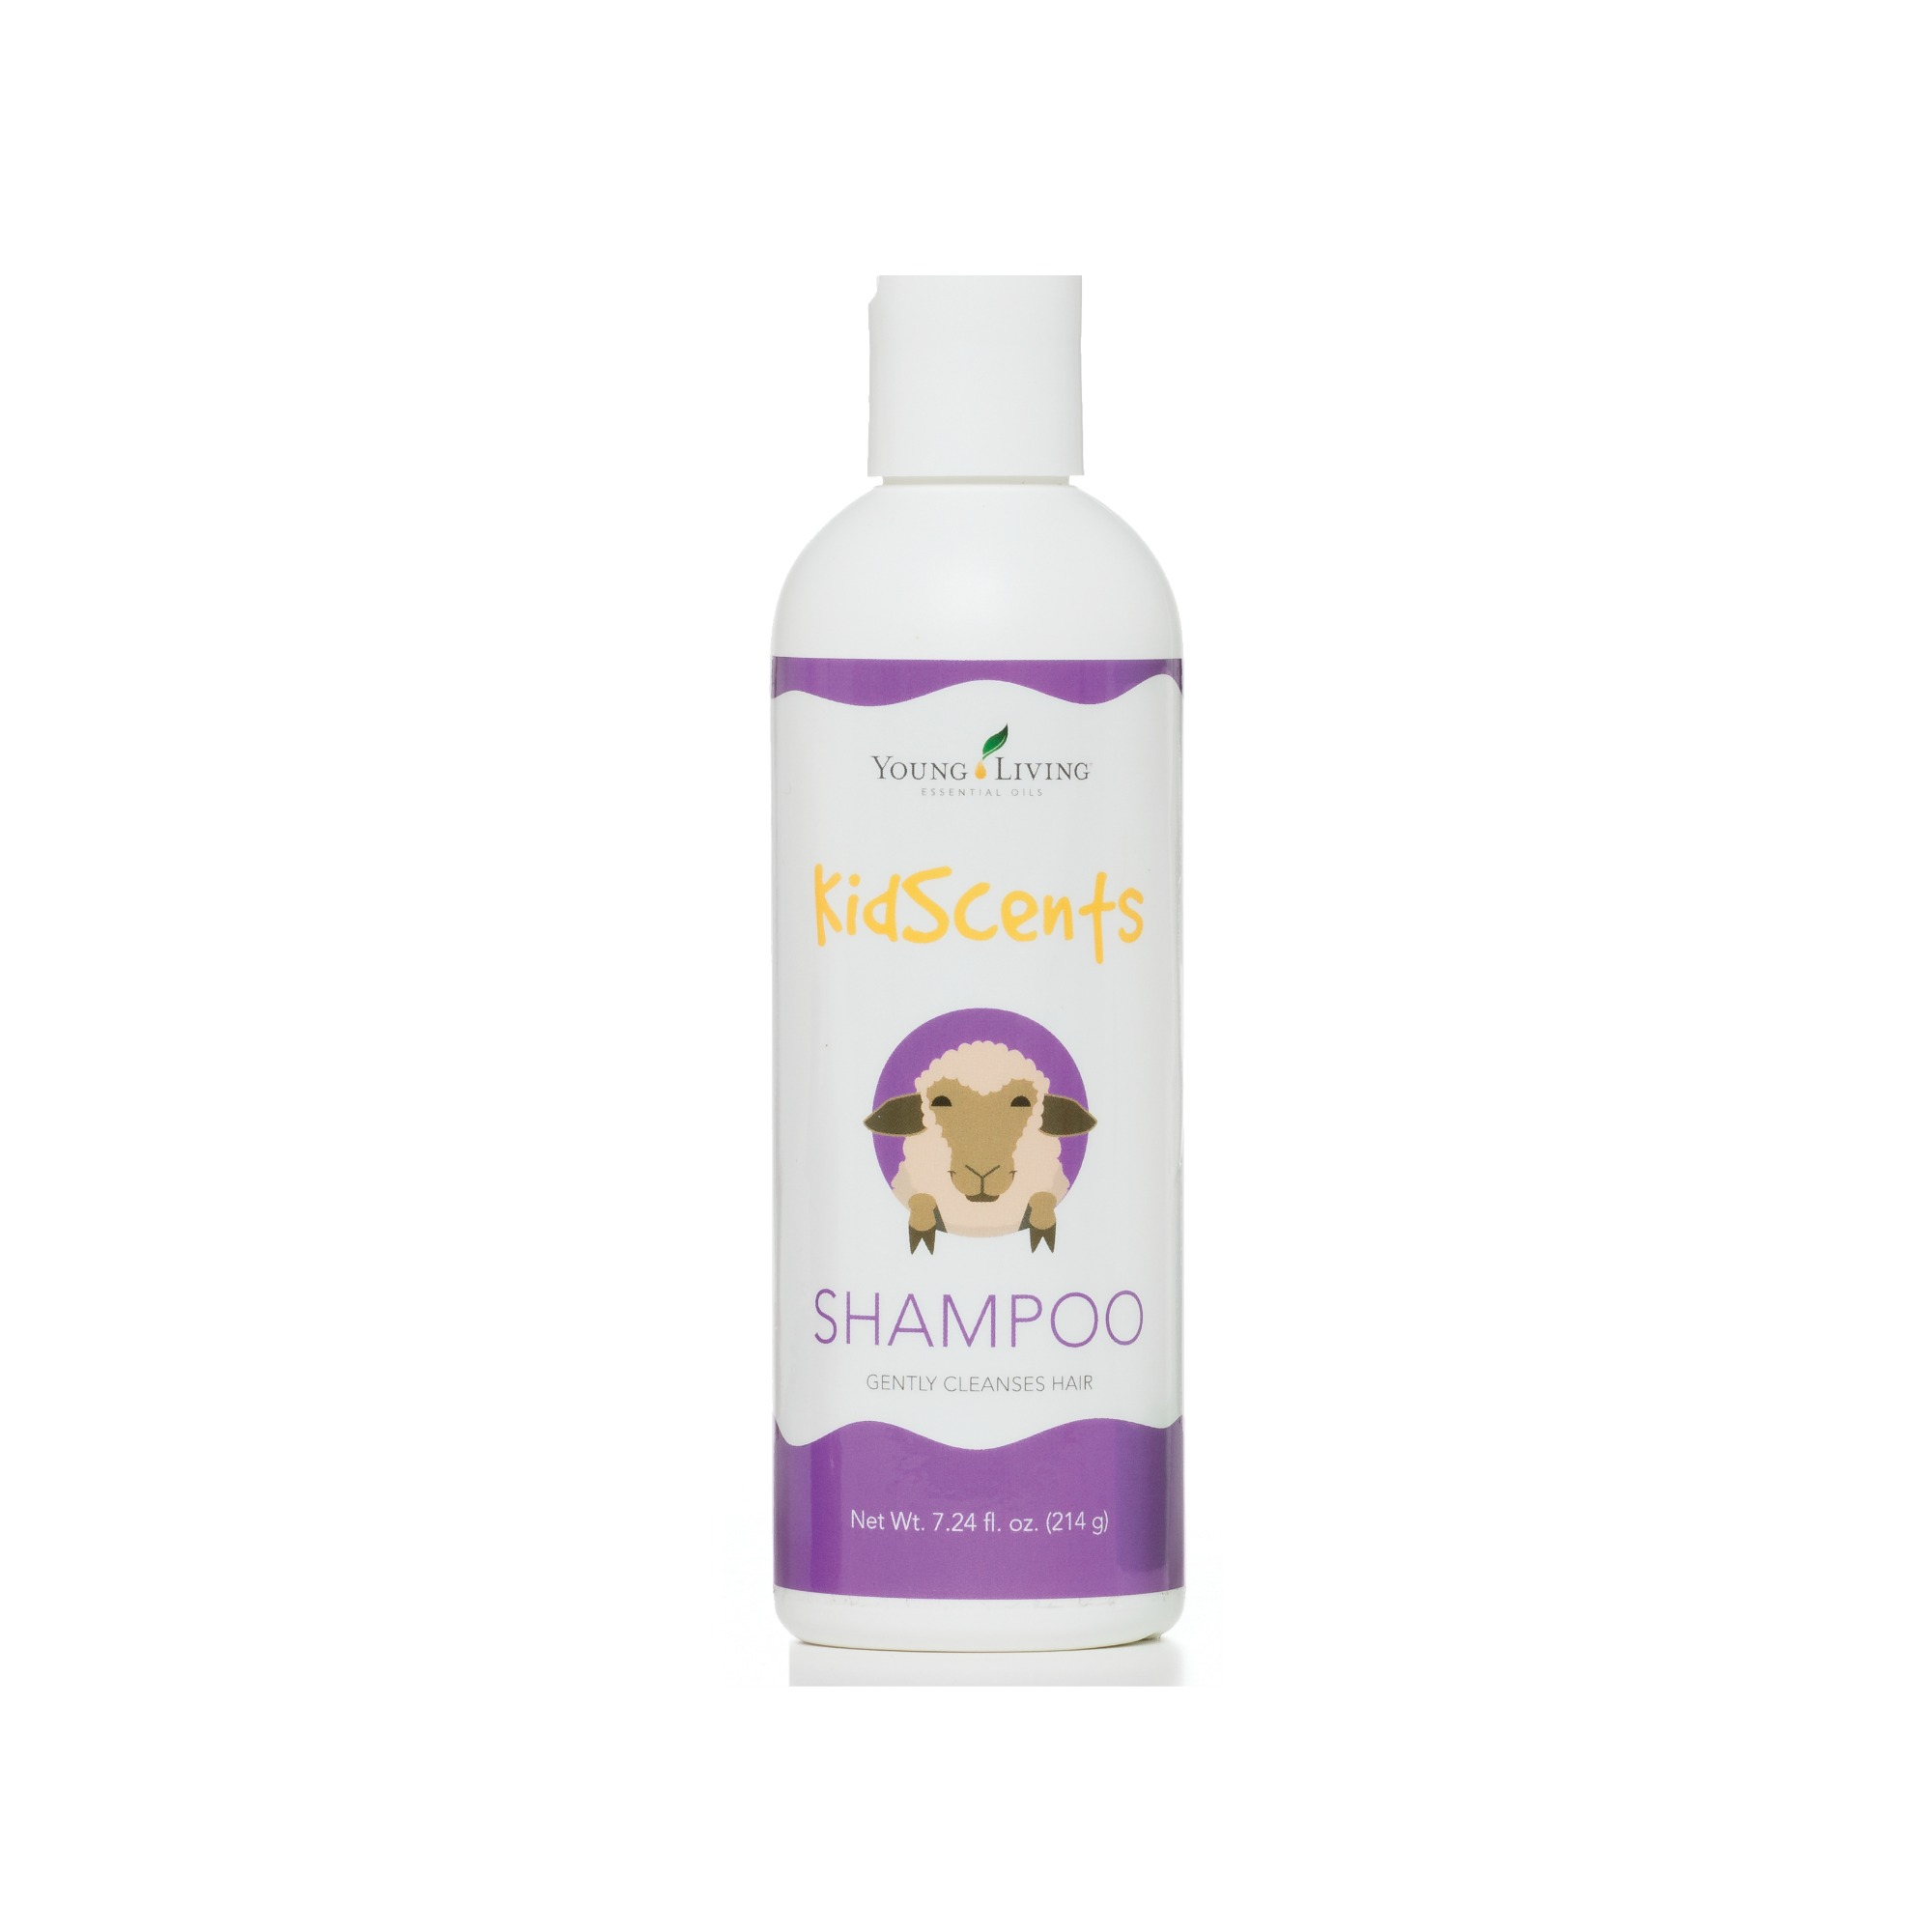 KIDSCENTS SHAMPOO    KidScents Shampoo contains no synthetic perfumes, colors, or toxic ingredients. The natural components in this shampoo—aloe, MSM, Chamomile, and Tangerine and Lemon essential oils—effectively and gently cleanse without causing irritation. Not only is this perfect for kids, it's also great for newborns, infants, toddlers, pets, and even adults too.   Click here   to learn more about this product.